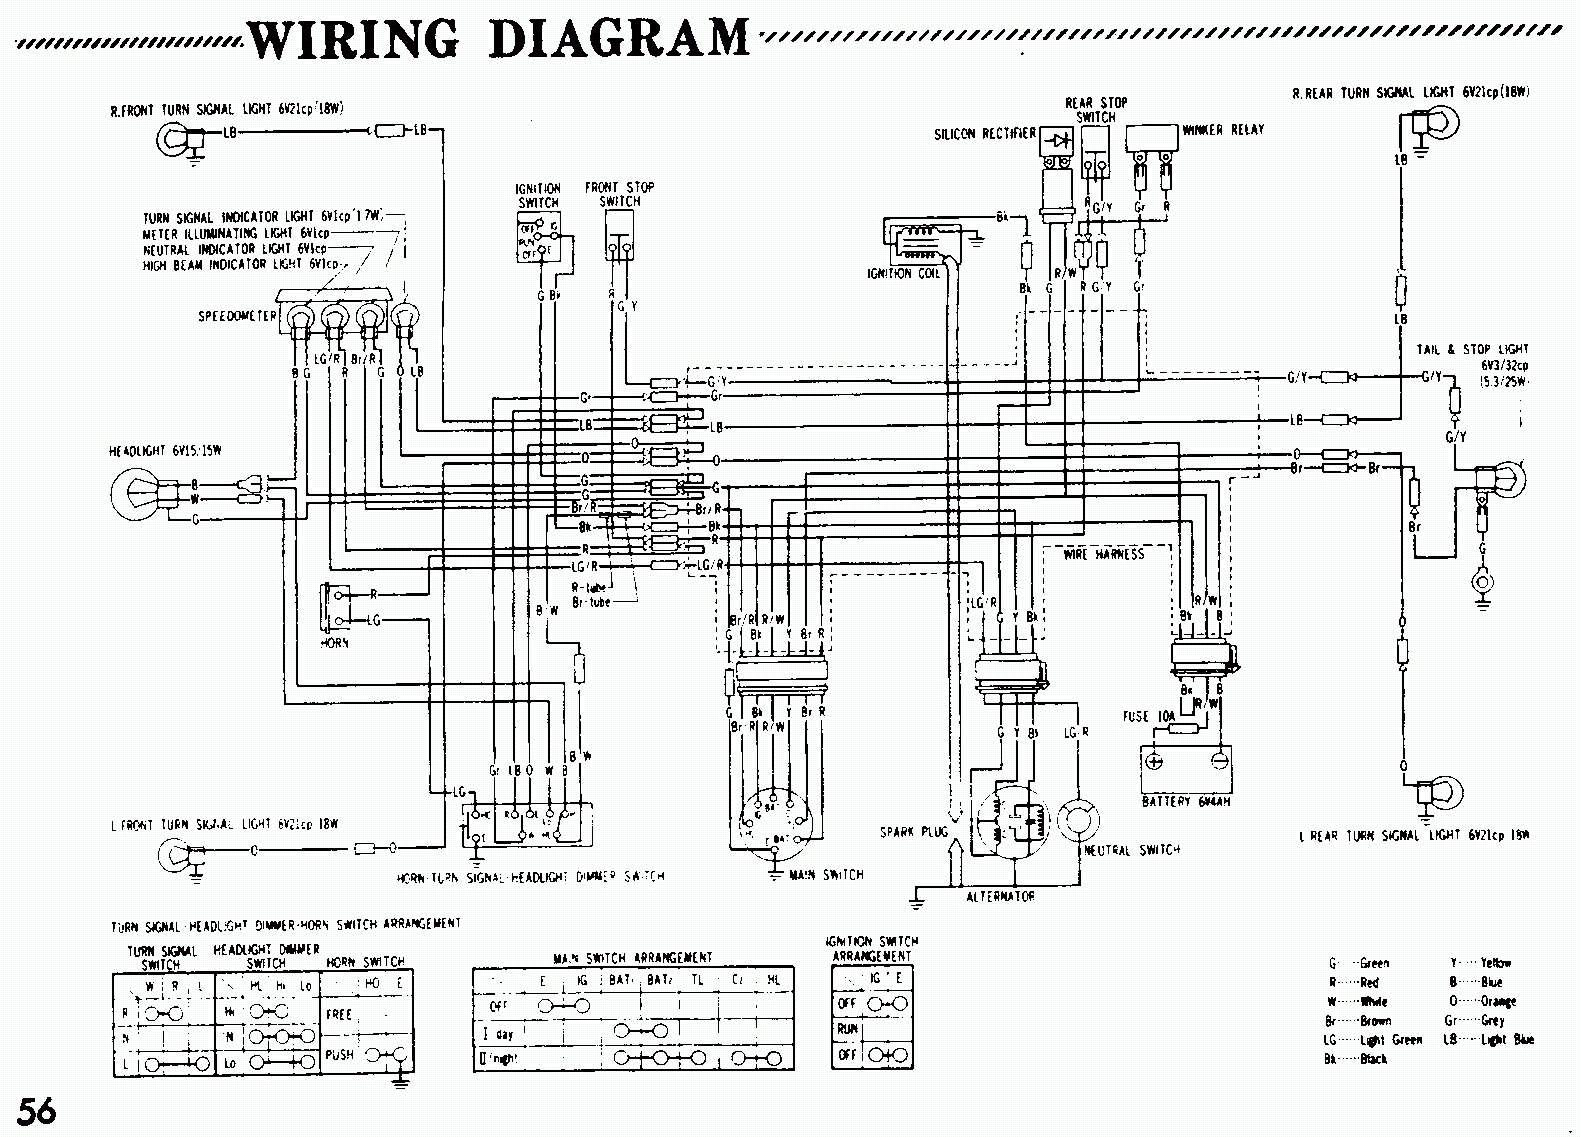 1980 Ct70 Wire Diagram - DATA WIRING DIAGRAM •